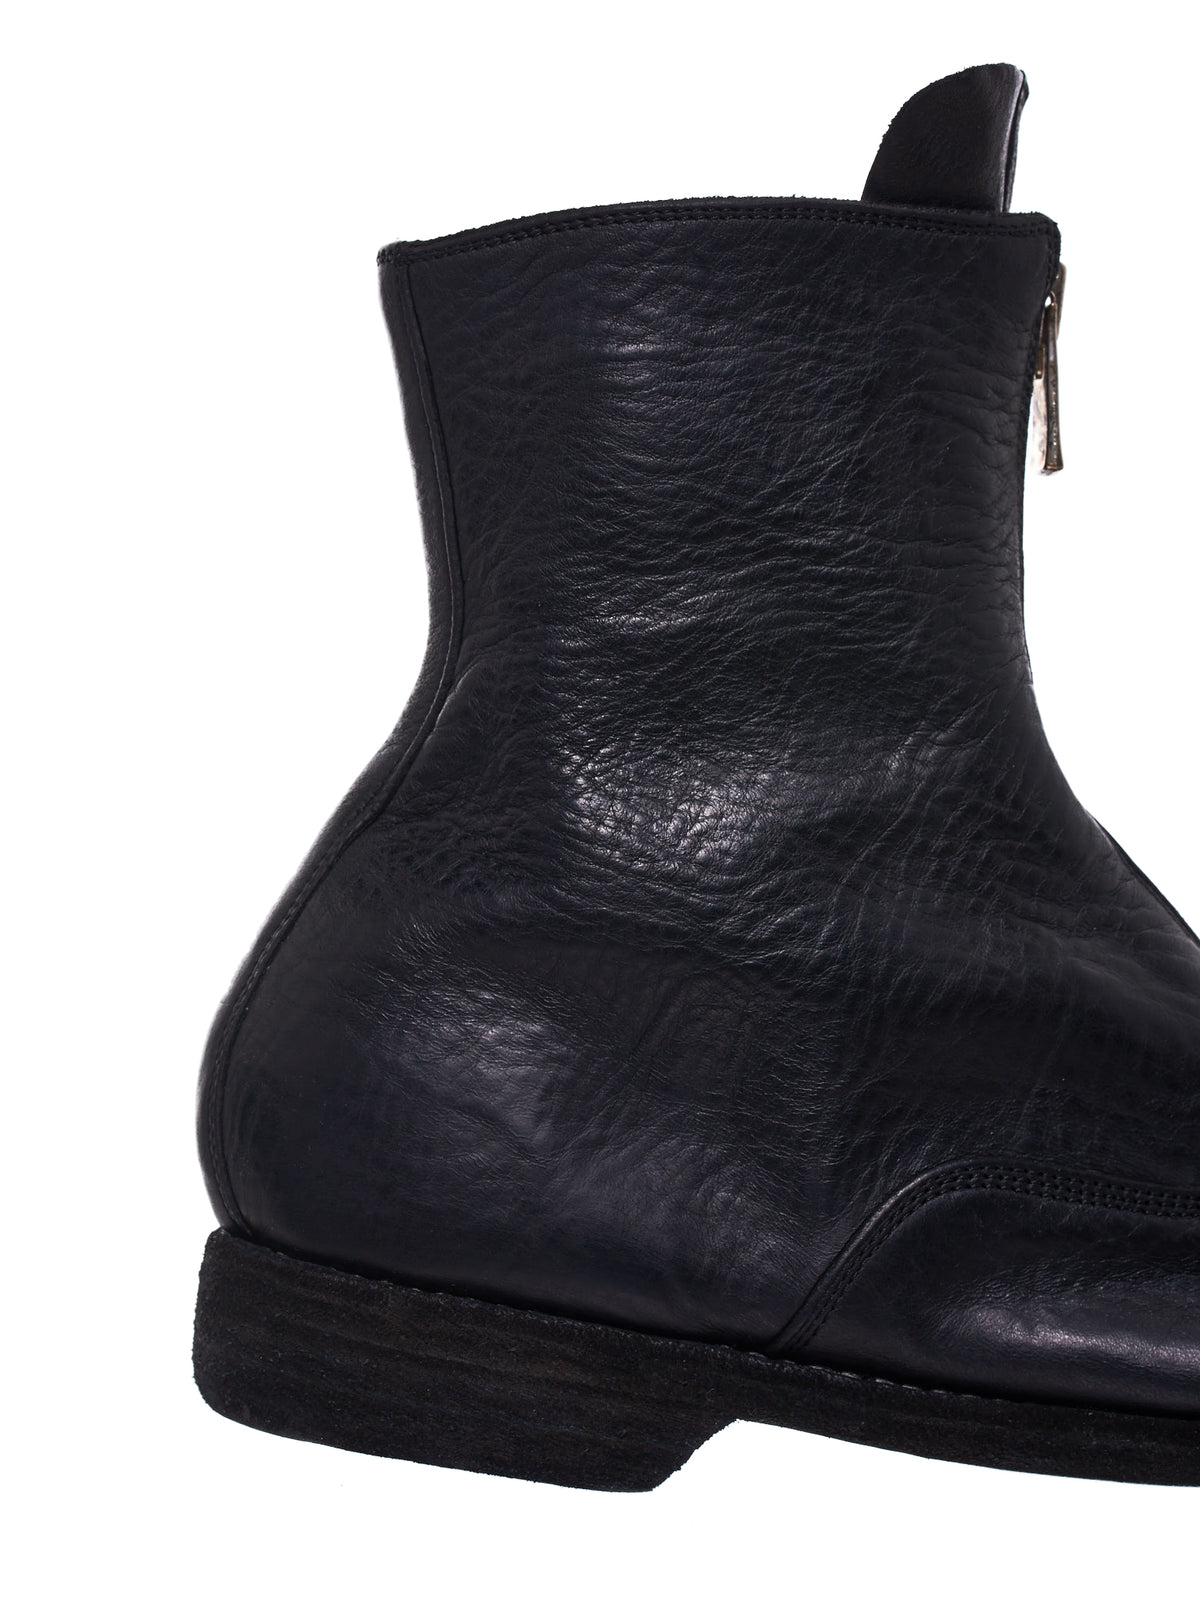 Guidi Boot - Hlorenzo Detail 2